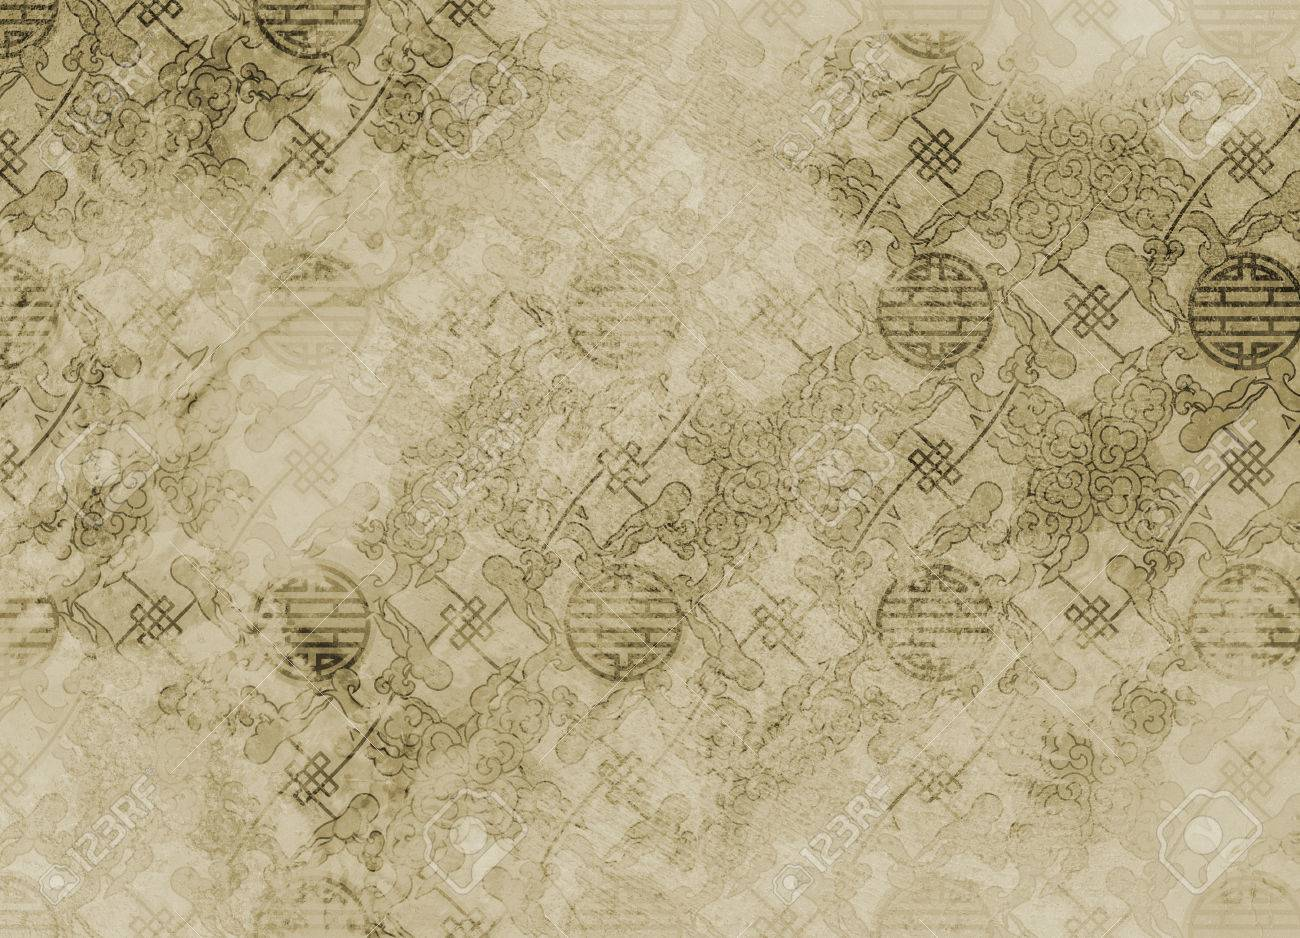 Chinese textured pattern in filigree for background or wallpaper rough and vintage - 40500472